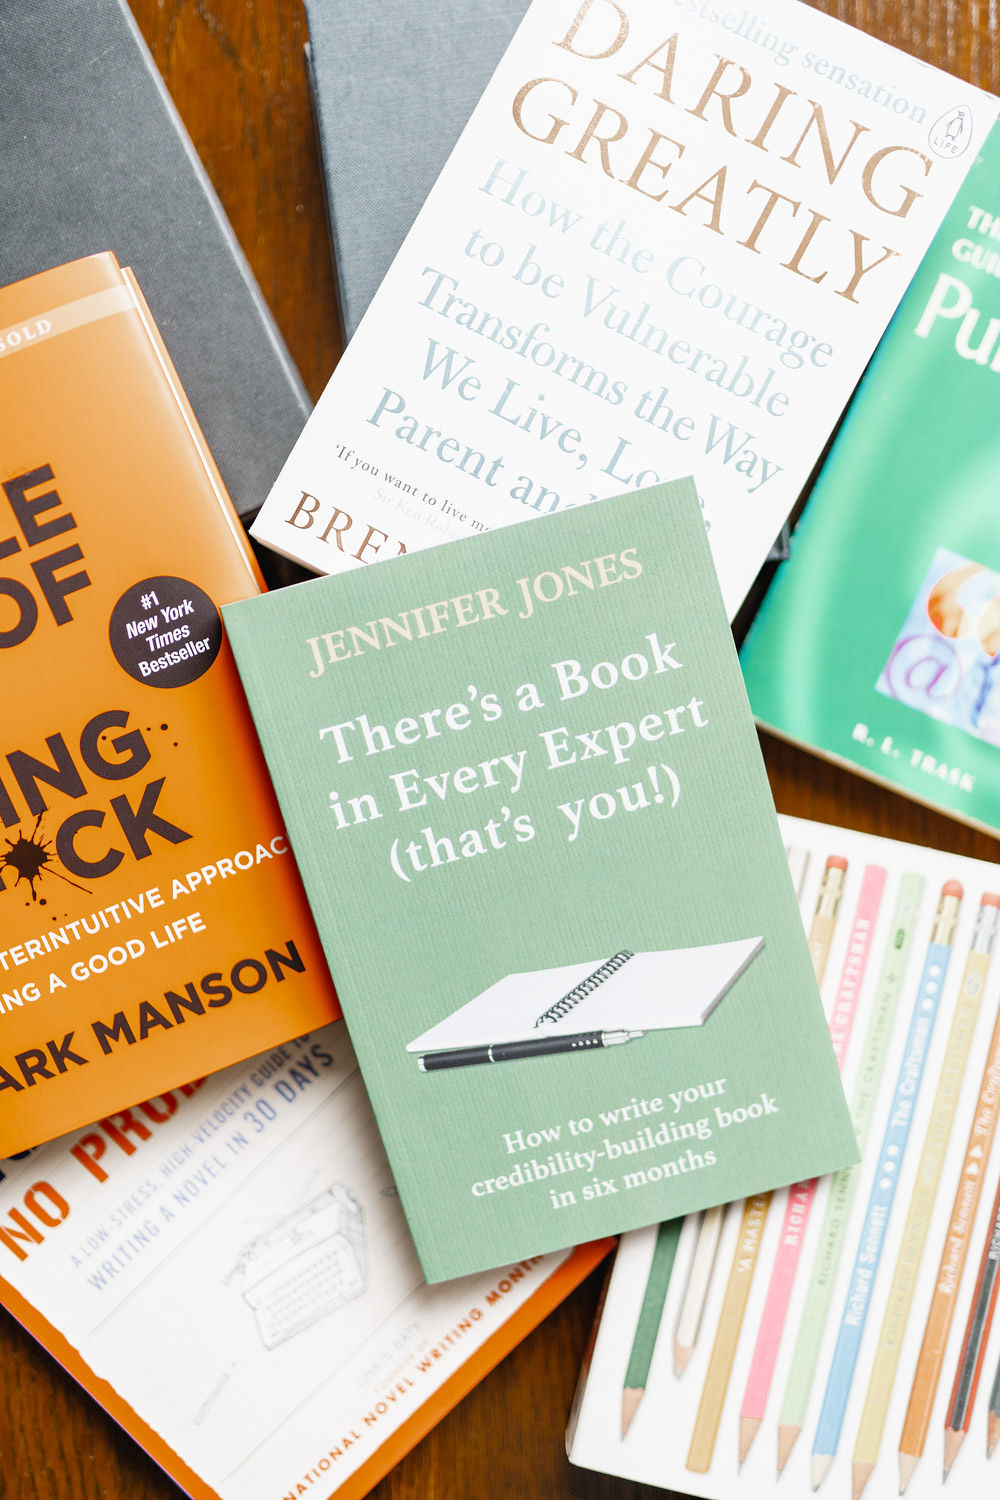 Books scattered on a table. The one on top is There's a Book in Every Expert (that's you!). Other titles include The Subtle Art of Not Giving a F*ck, Daring Greatly, No Plot? No Problem, The Penguin Guide to Punctuation, and The Craftsman